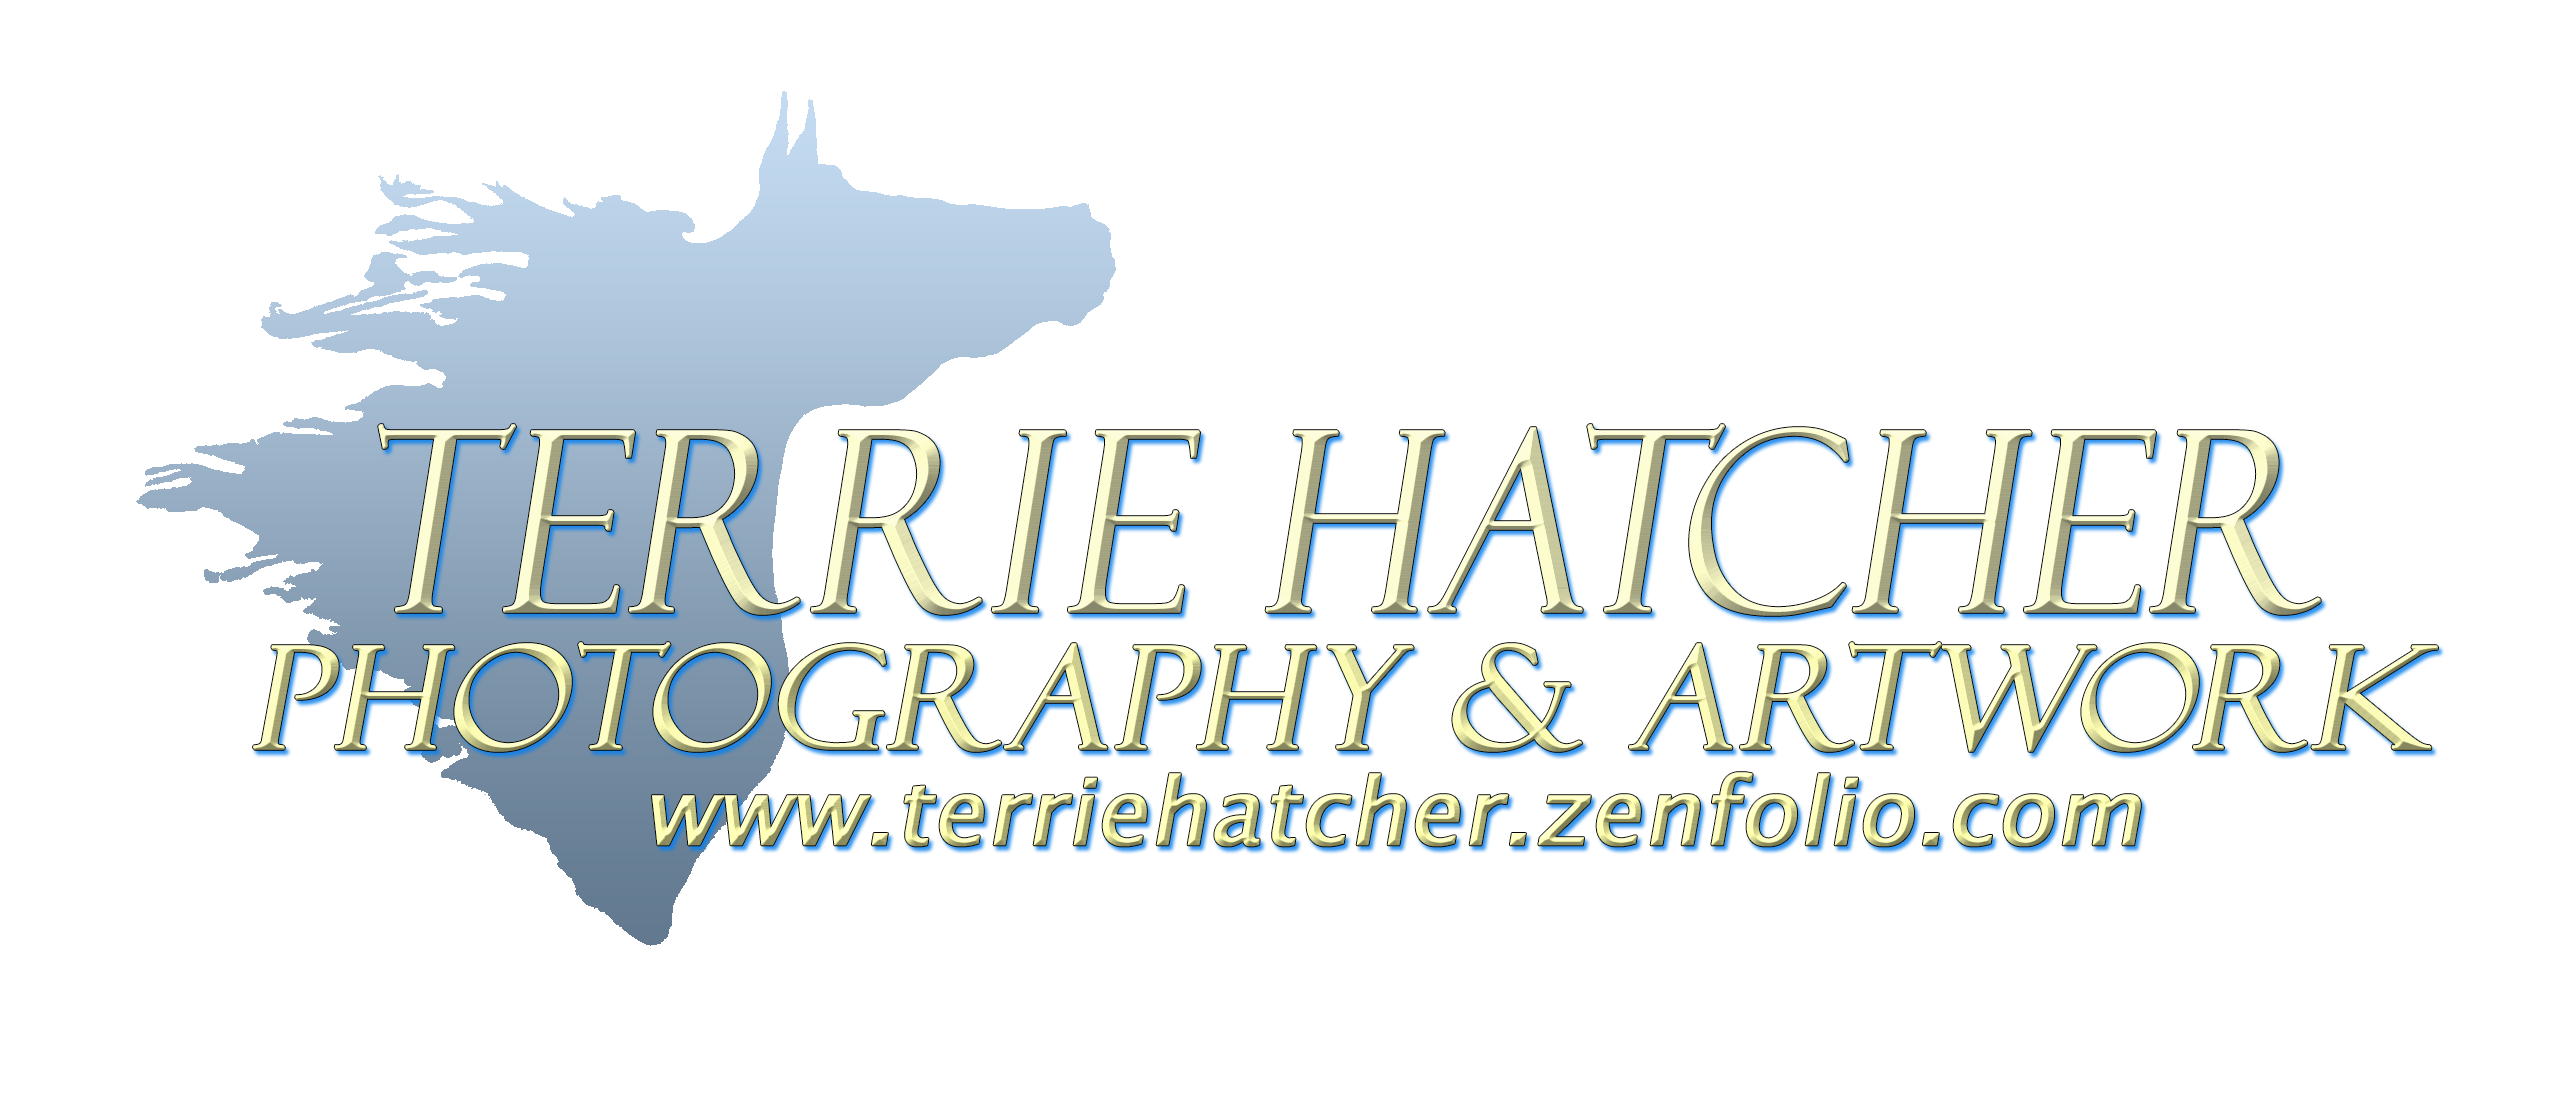 Terrie Hatcher Photography & Artwork